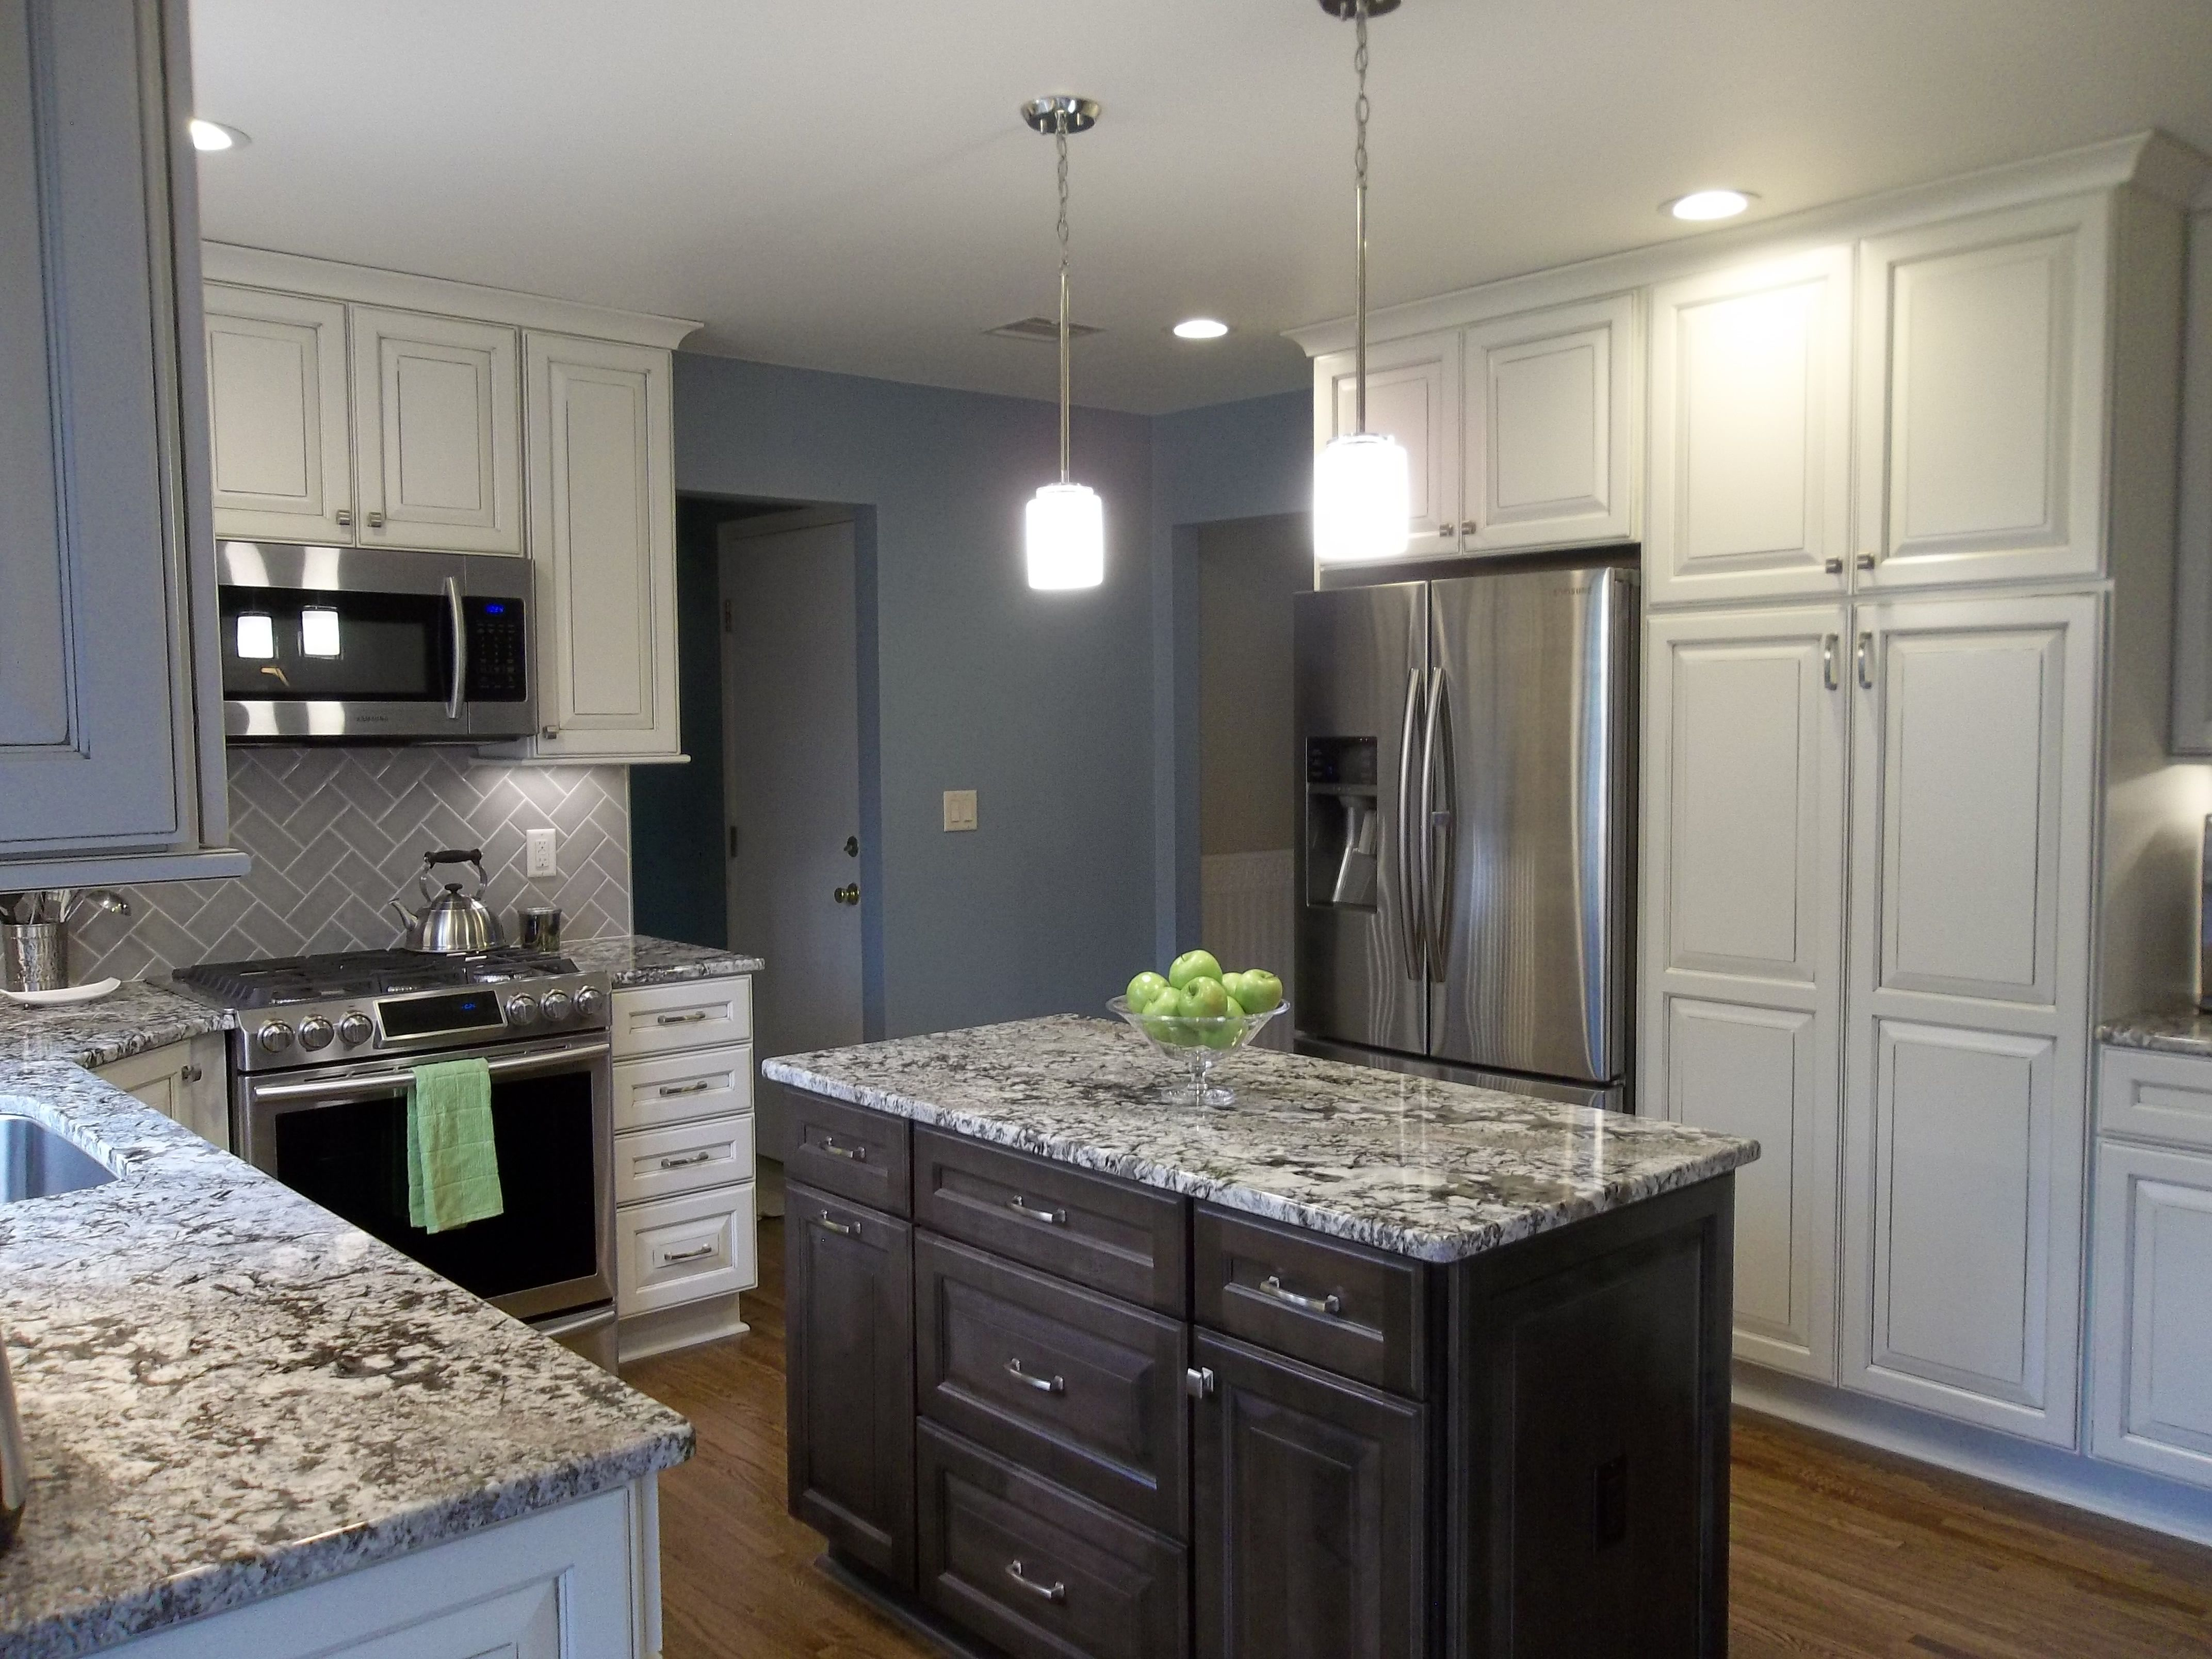 Lowe S Can Help Through Your Kitchen Remodel From Design Ideas Cost Estimates And Installation